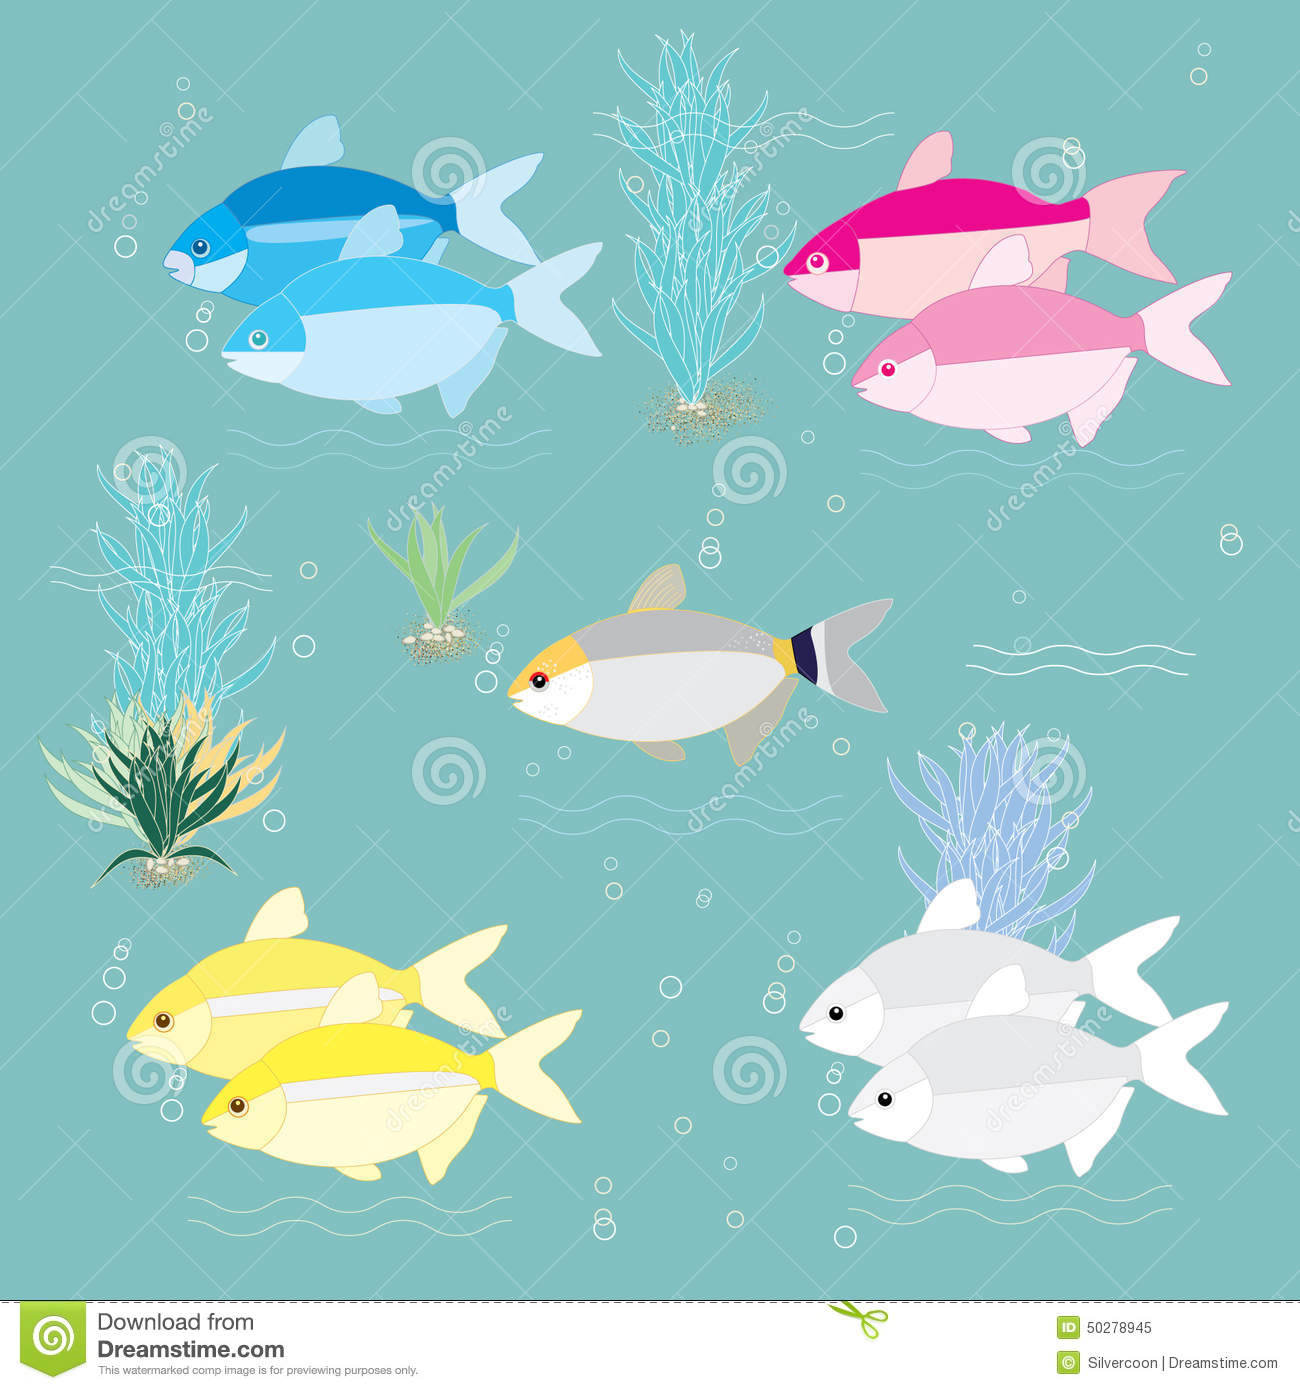 Tropical fishes Illustration